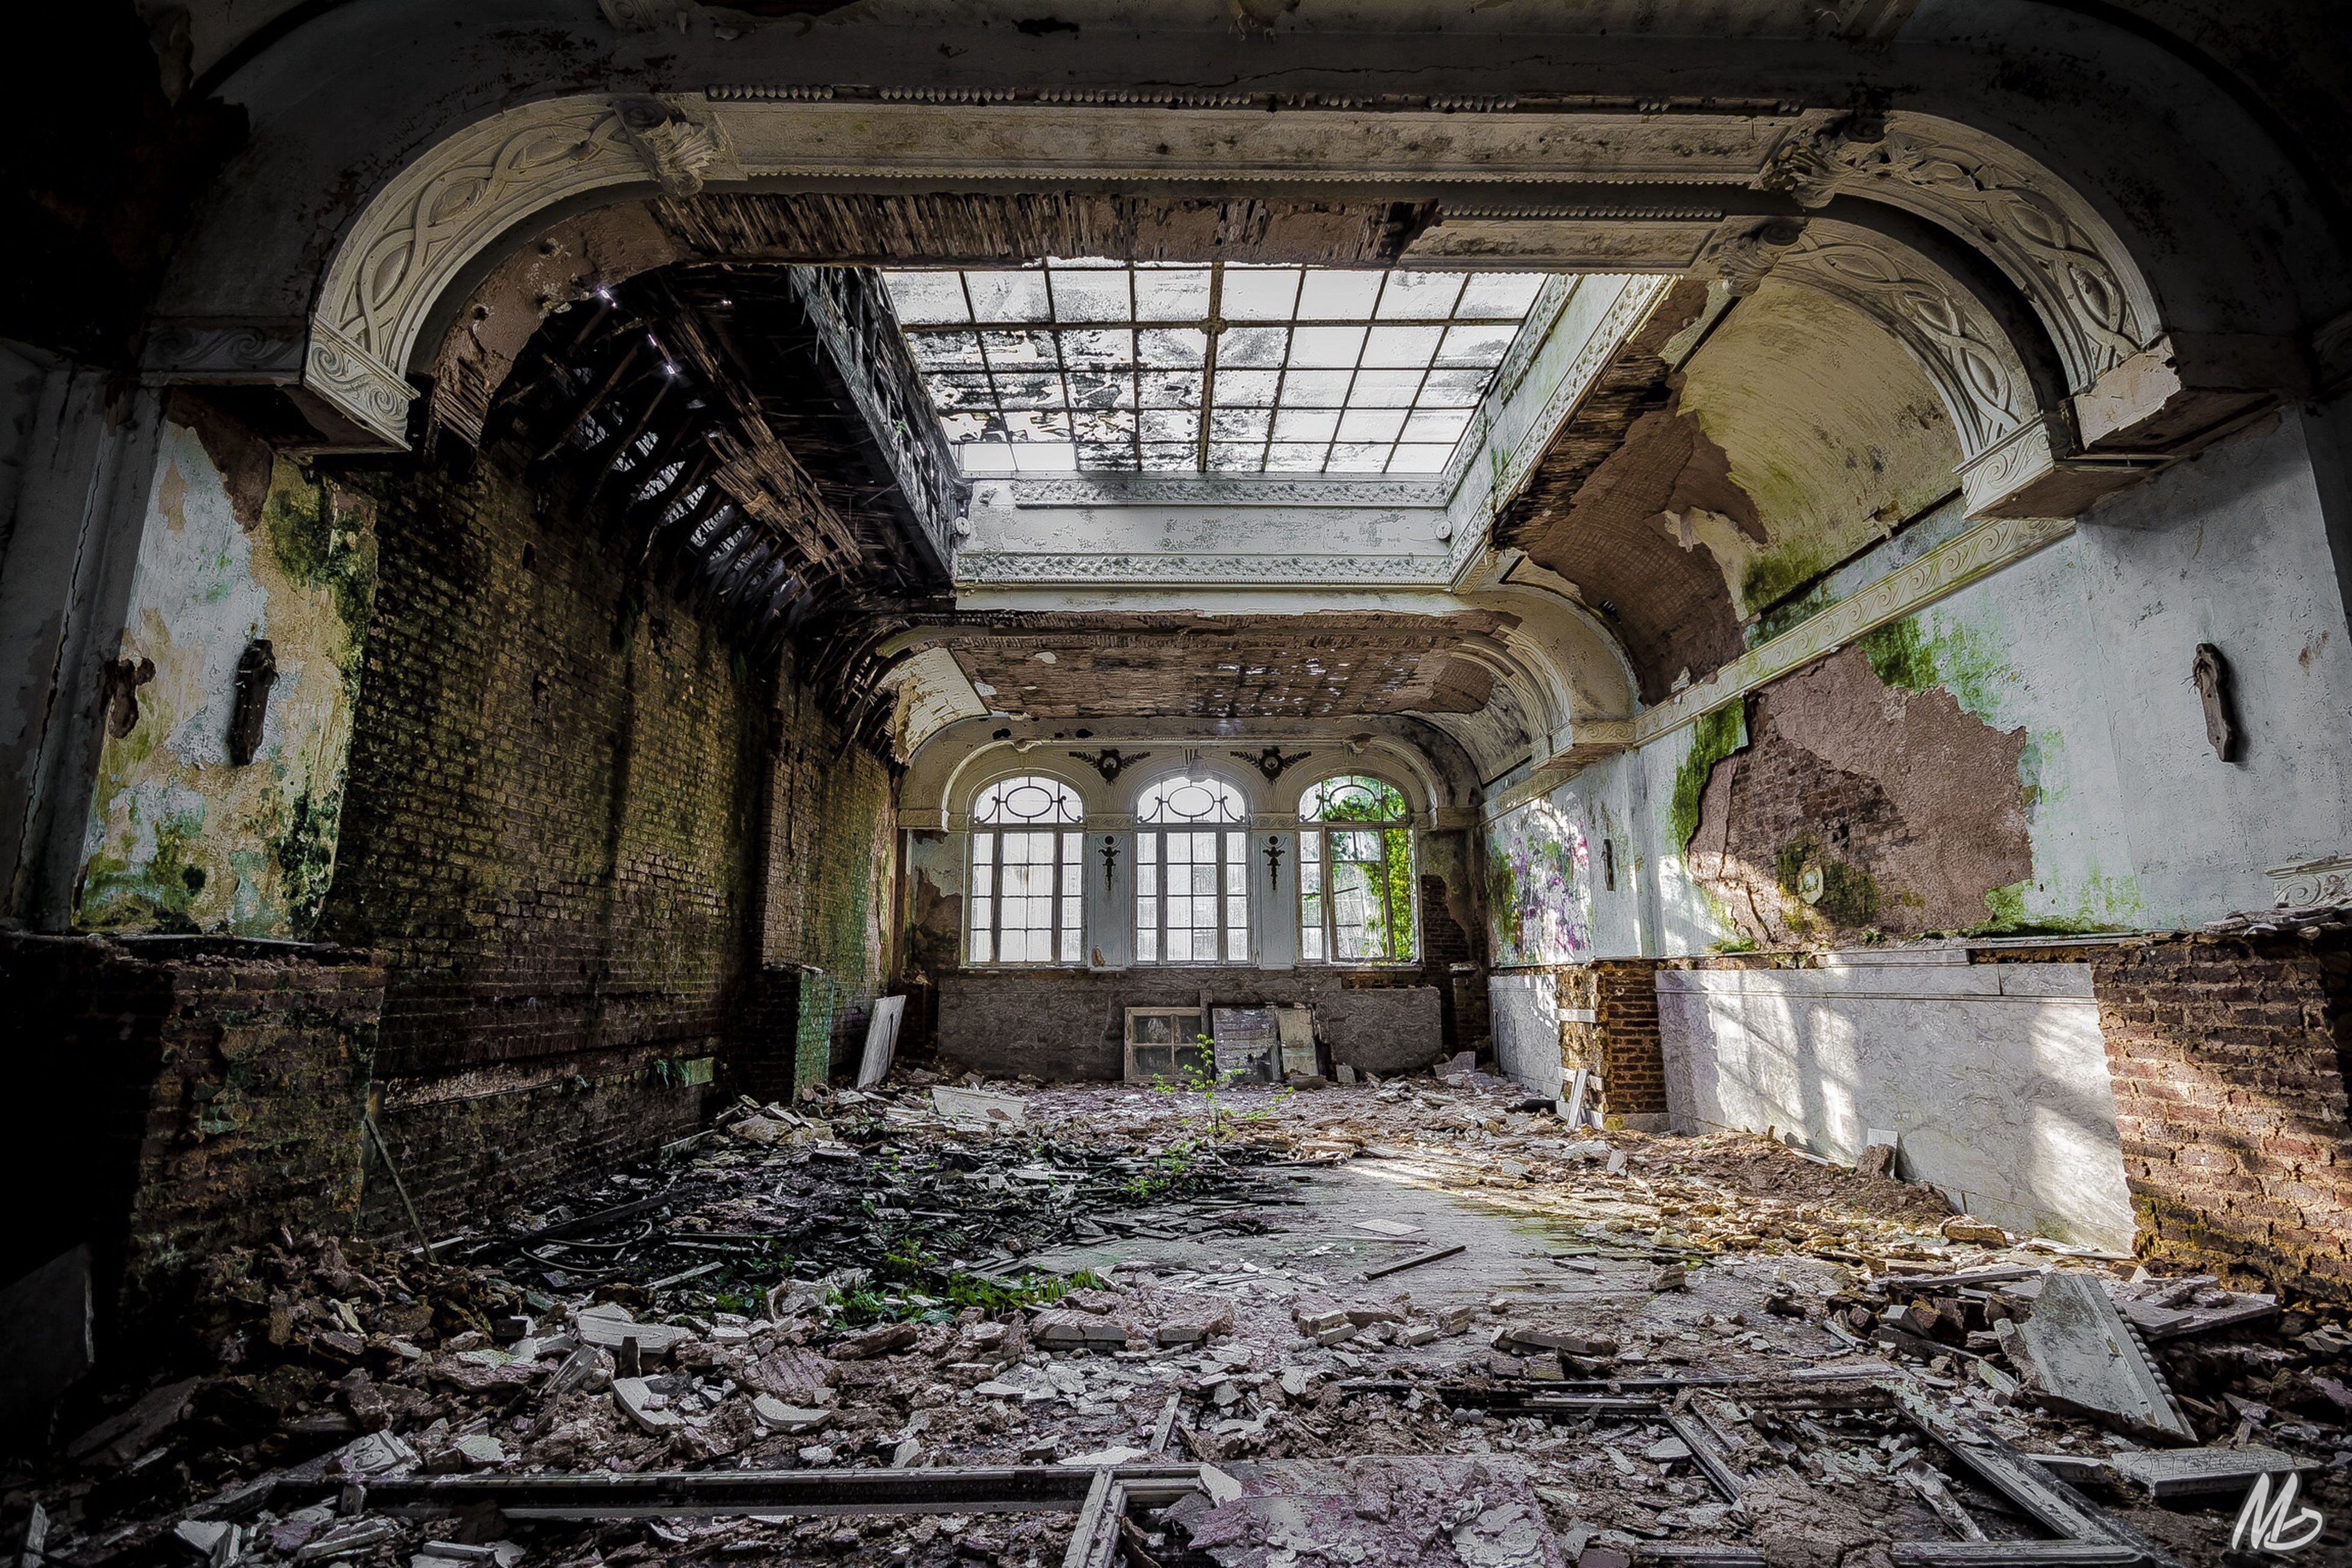 indoors, abandoned, architecture, built structure, obsolete, damaged, run-down, deterioration, old, interior, ceiling, window, arch, bad condition, ruined, weathered, messy, destruction, broken, old ruin